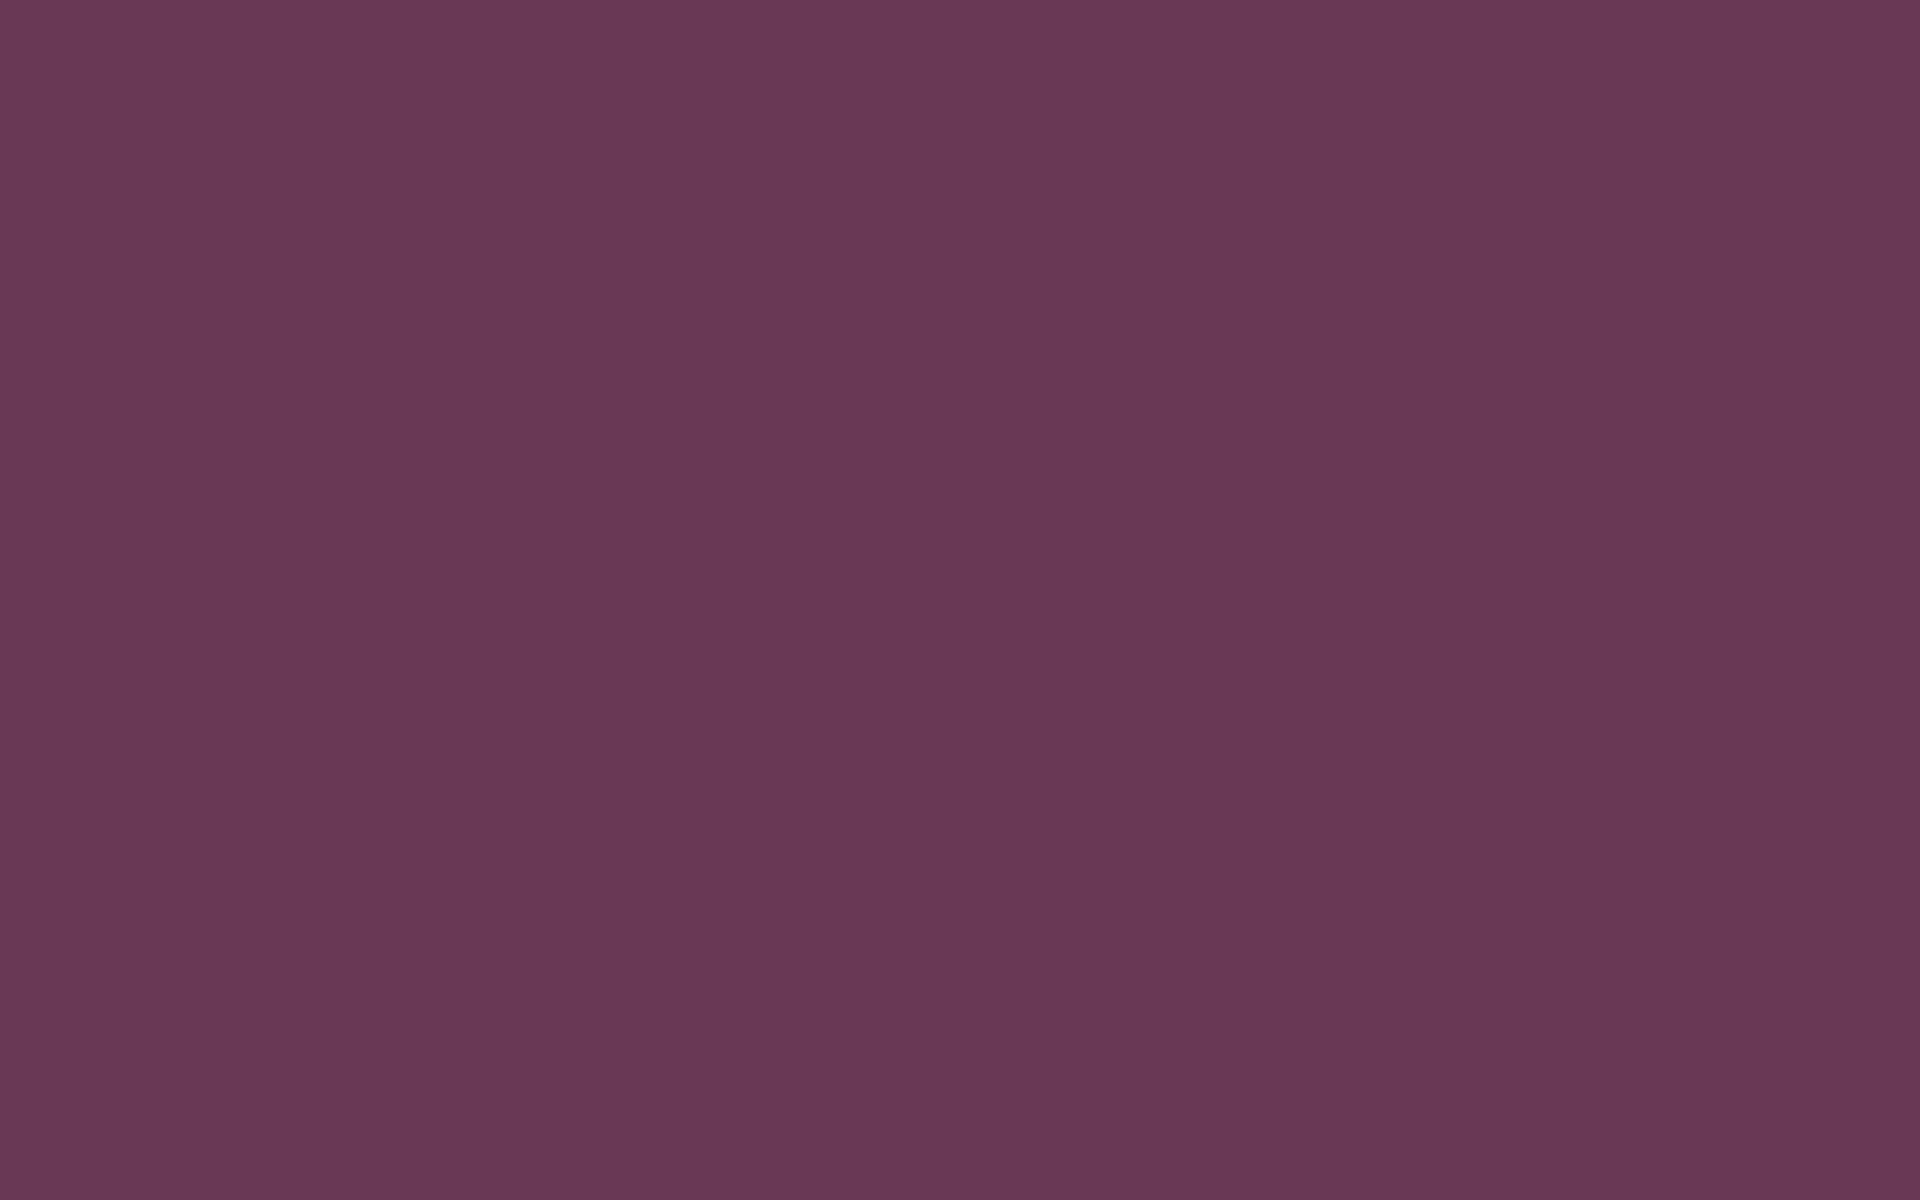 1920x1200 Halaya Ube Solid Color Background